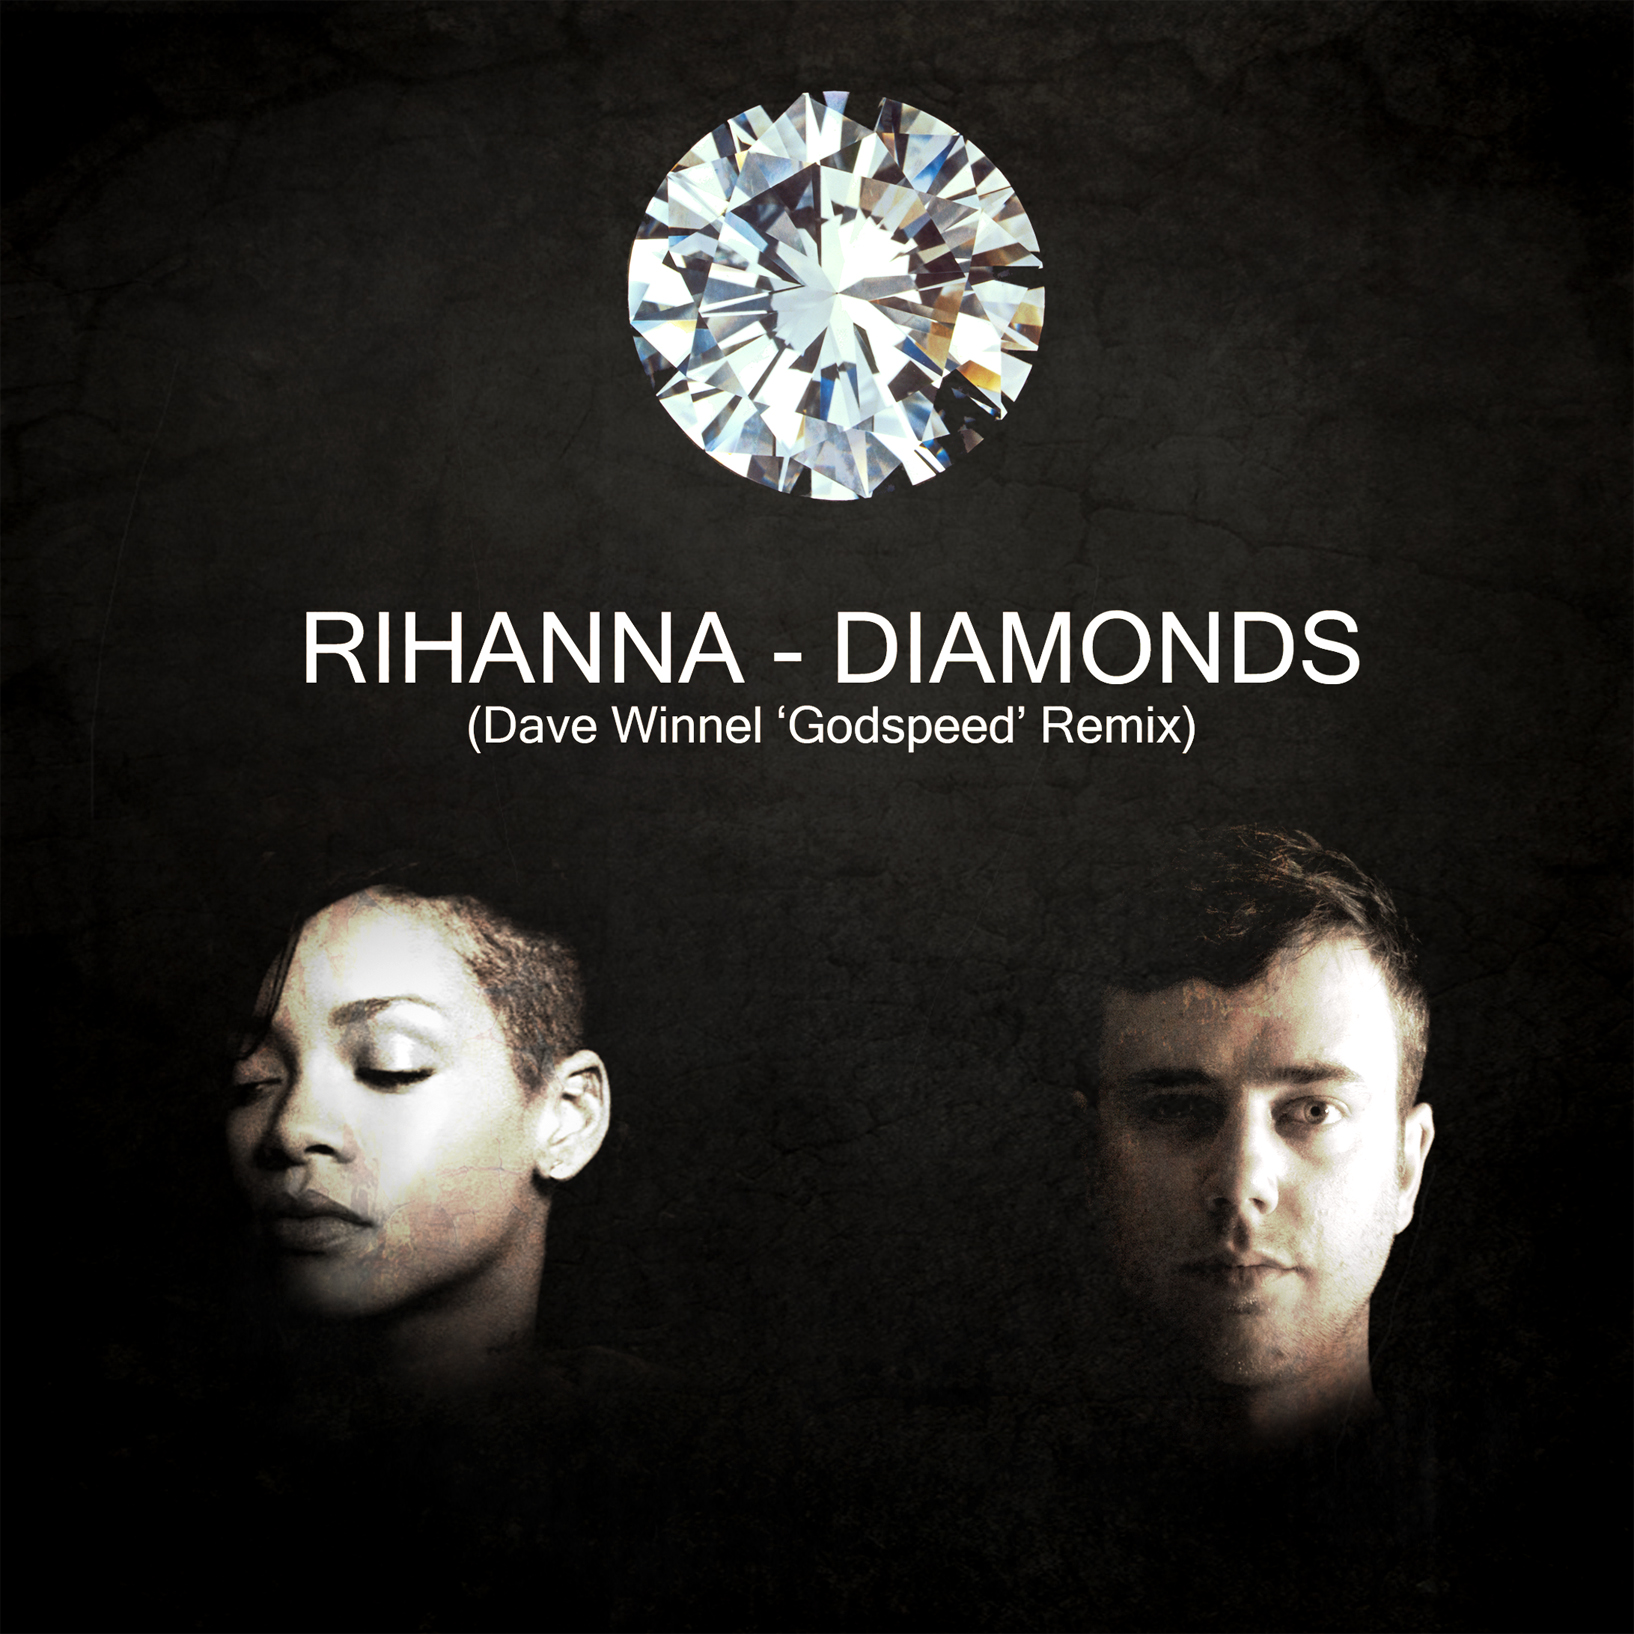 Rihanna - Diamond$ (Dave Winnel Godspeed Remix)